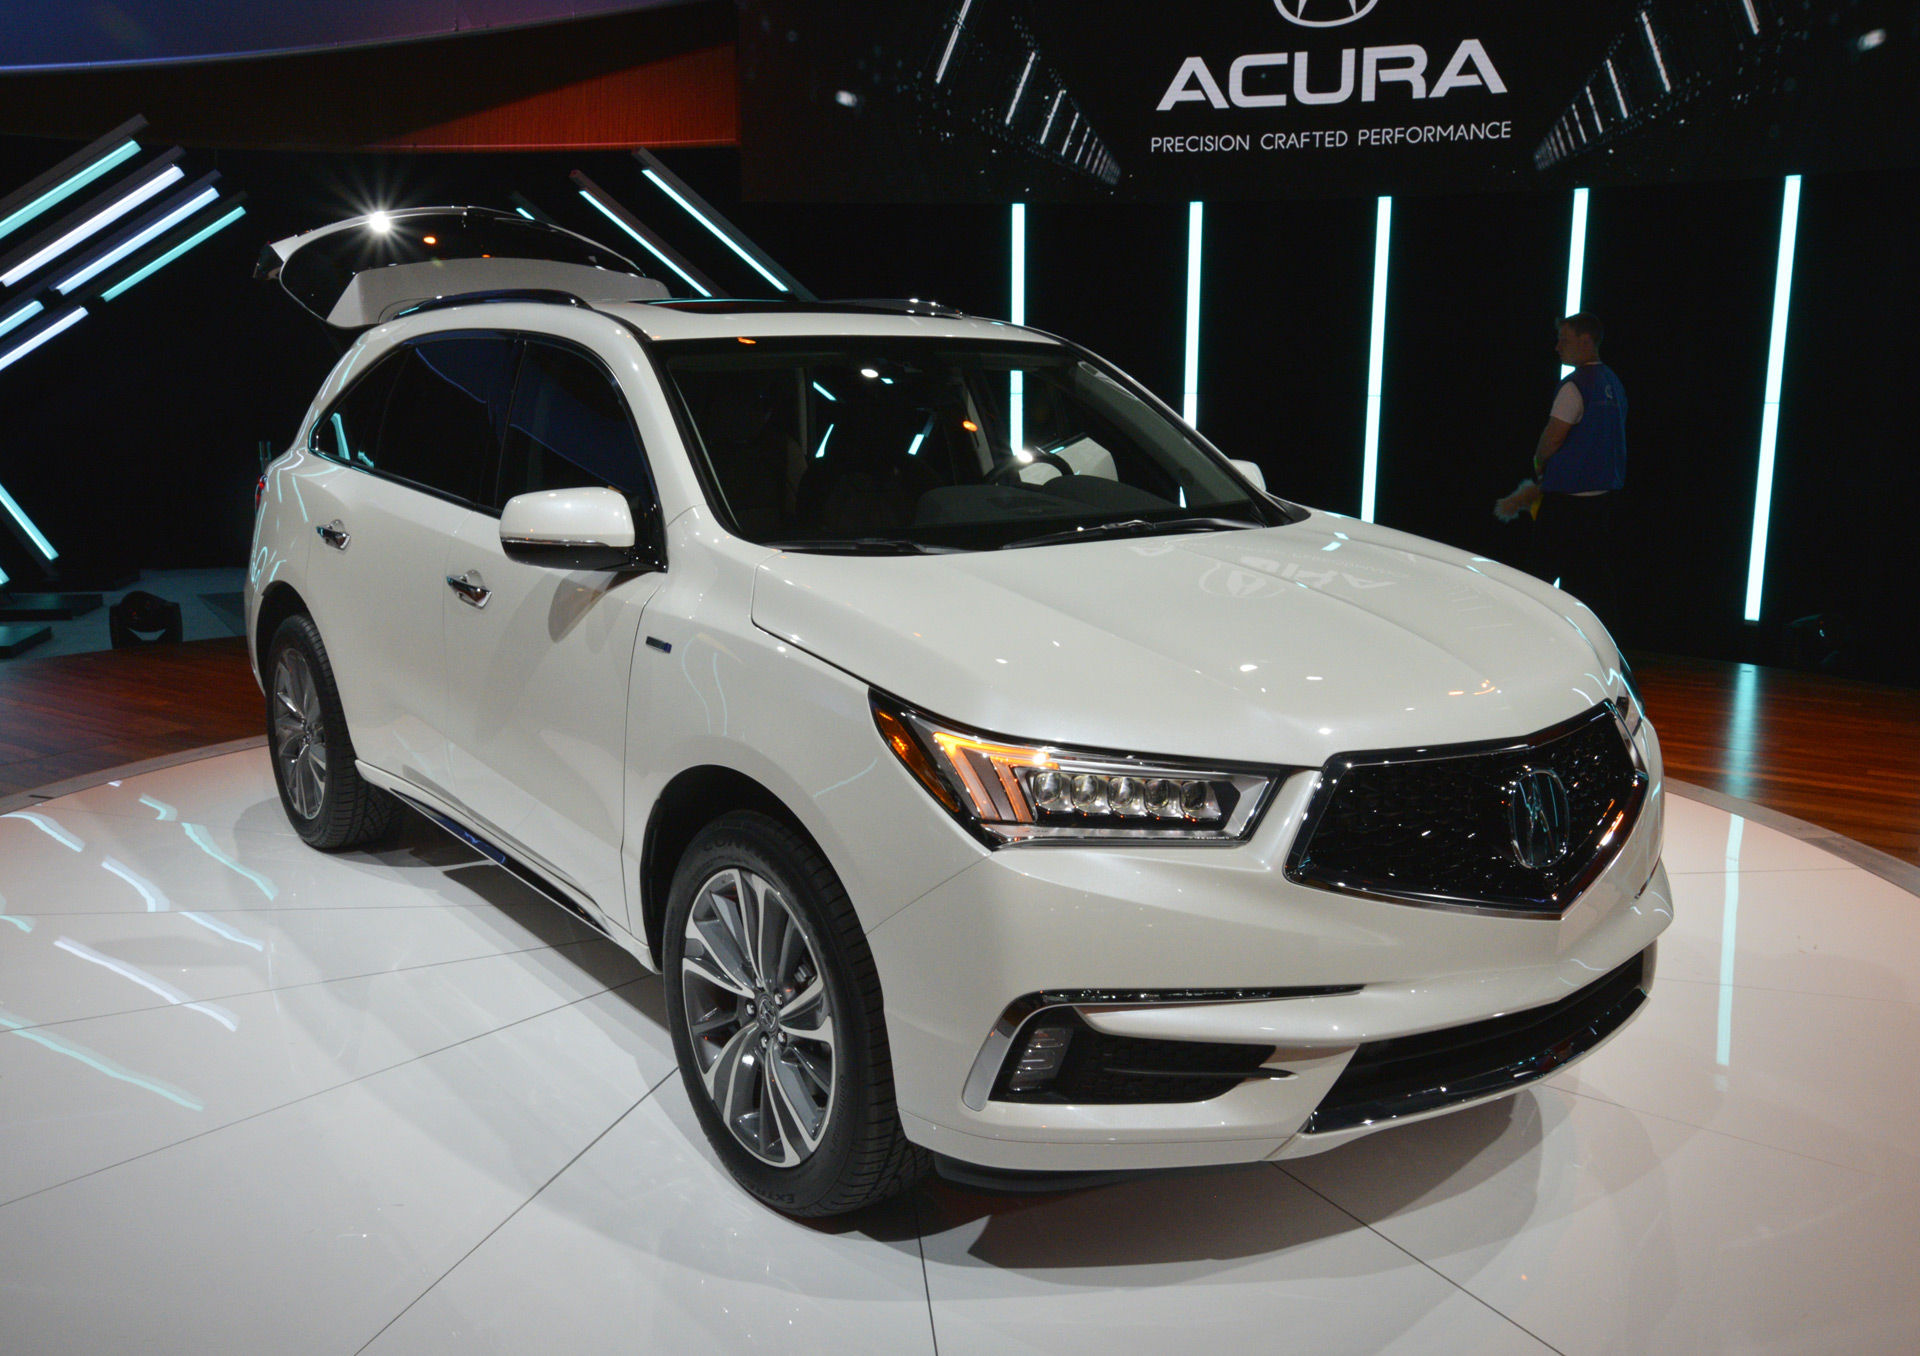 2017 Acura Mdx Debuts With New Look Nsx Derived Hybrid System Live Photos And Video